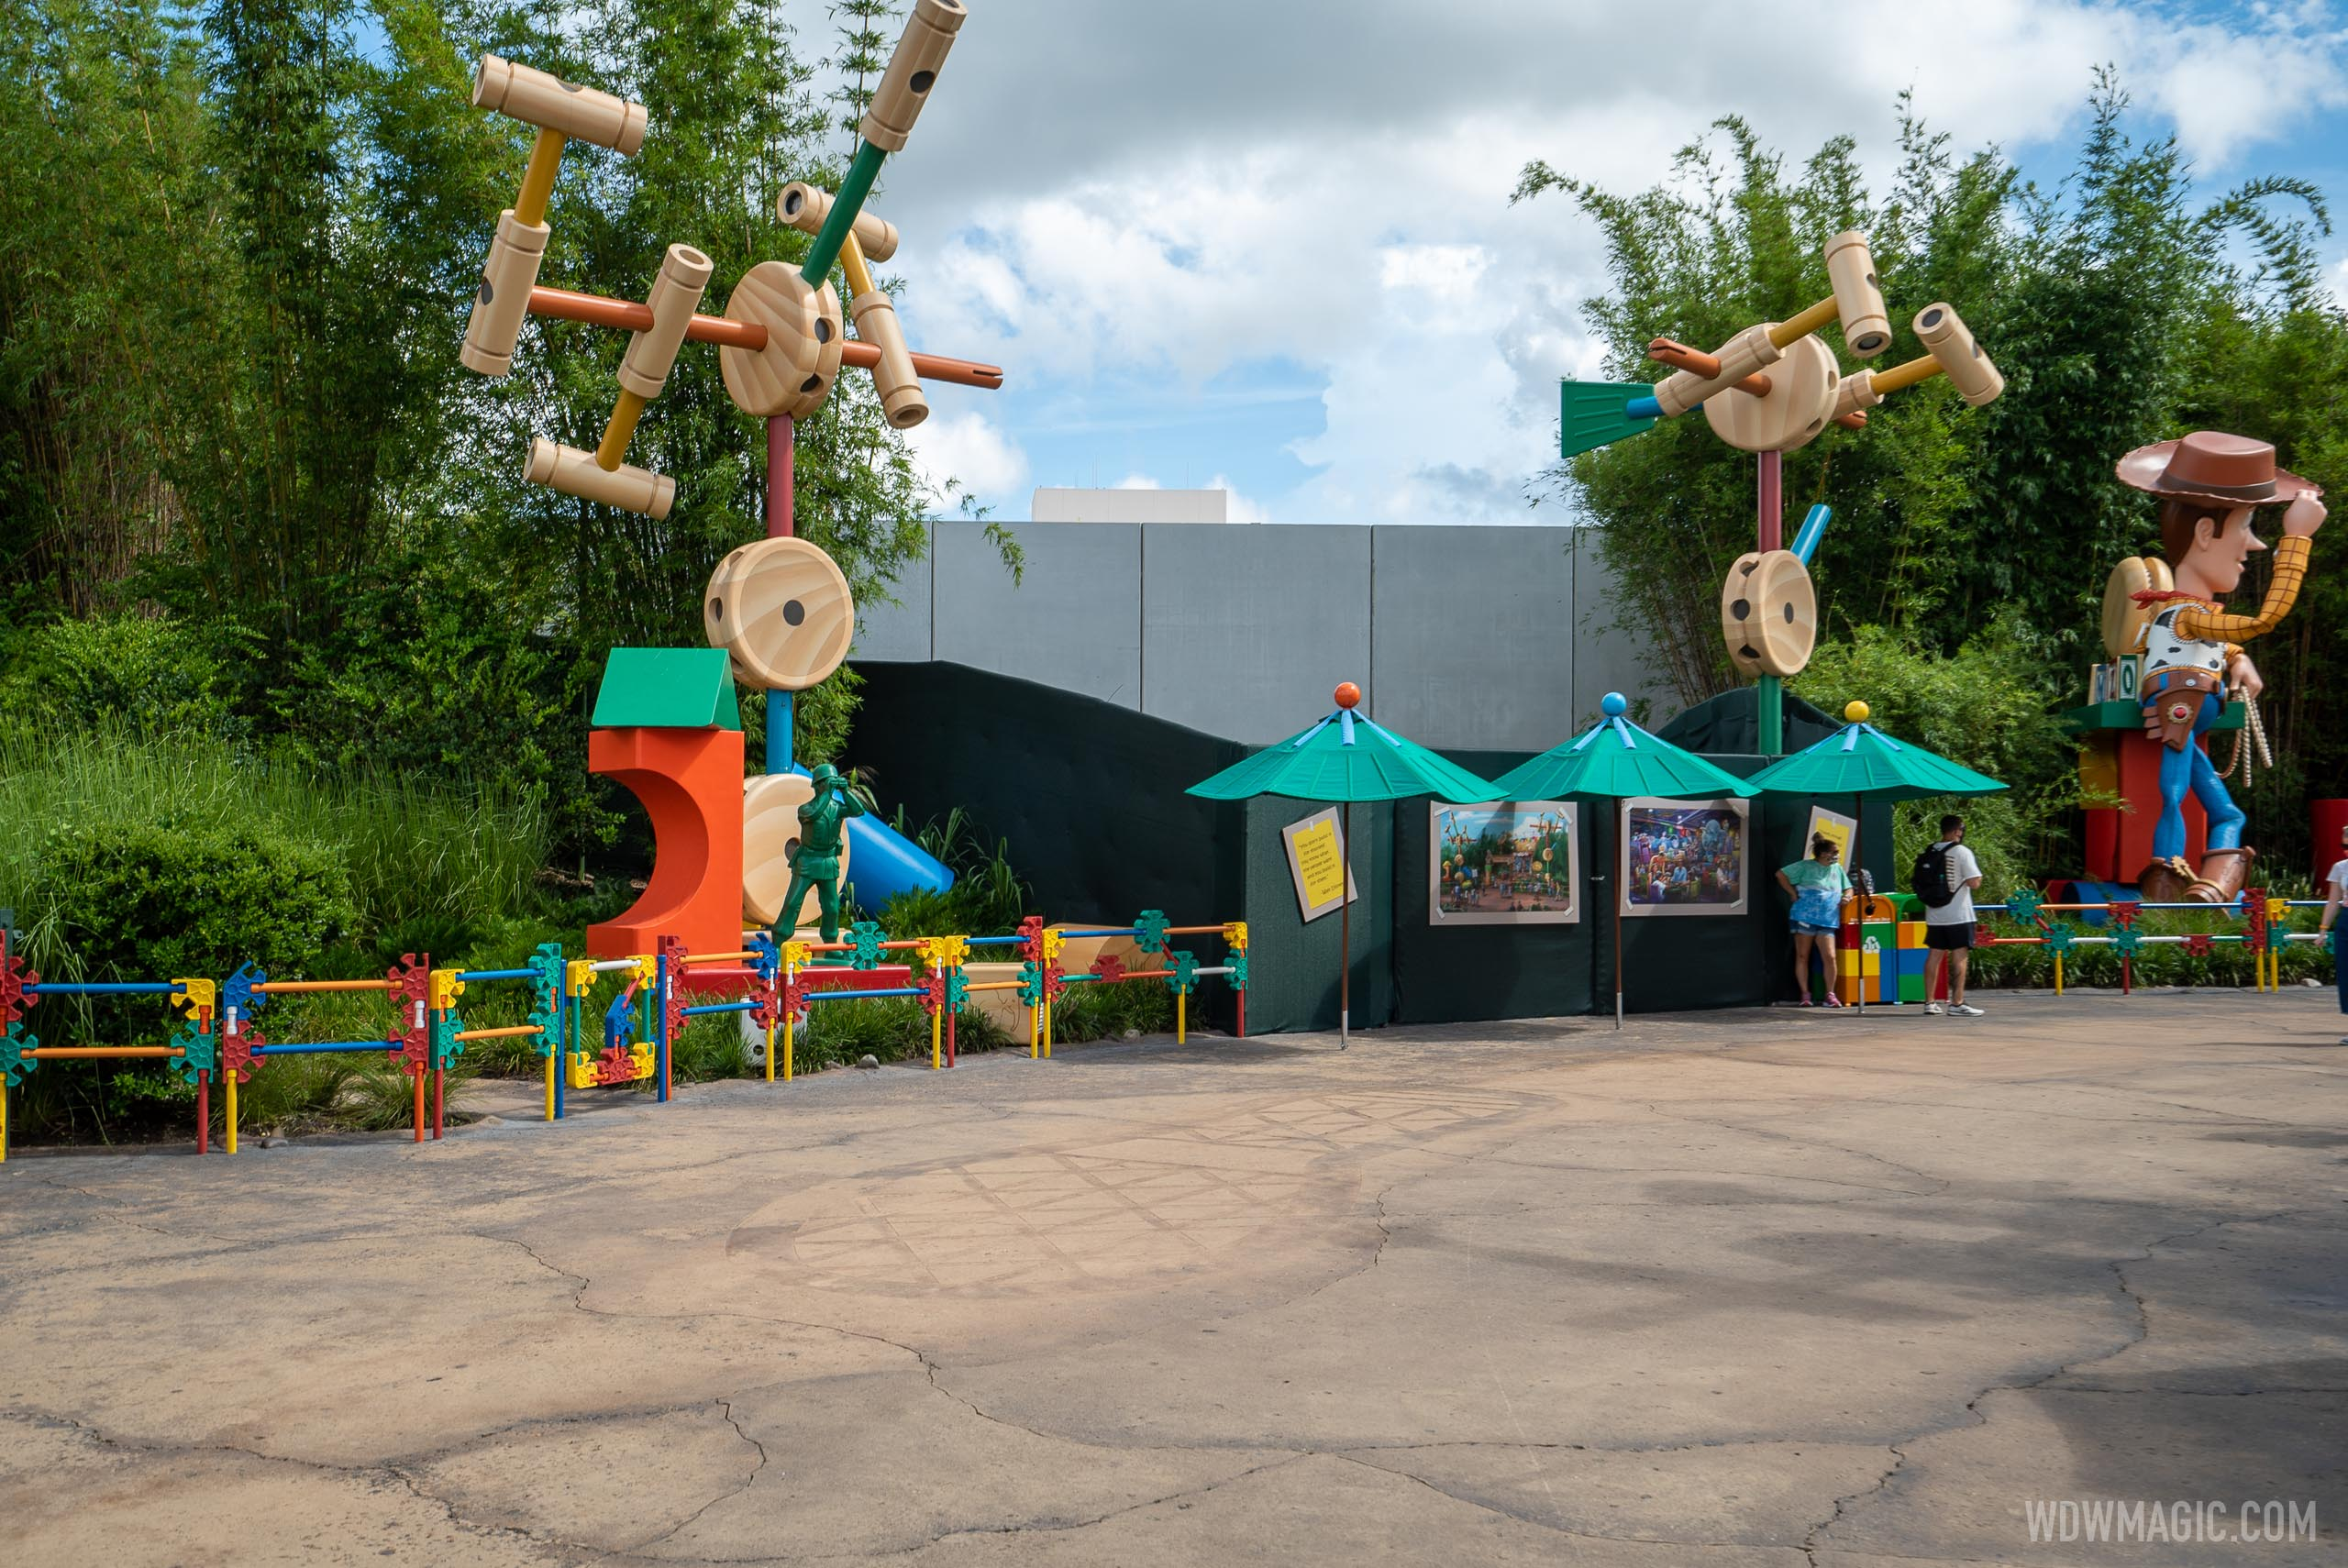 PHOTOS - A look at Roundup Rodeo BBQ in Toy Story Land at Disney's Hollywood Studios